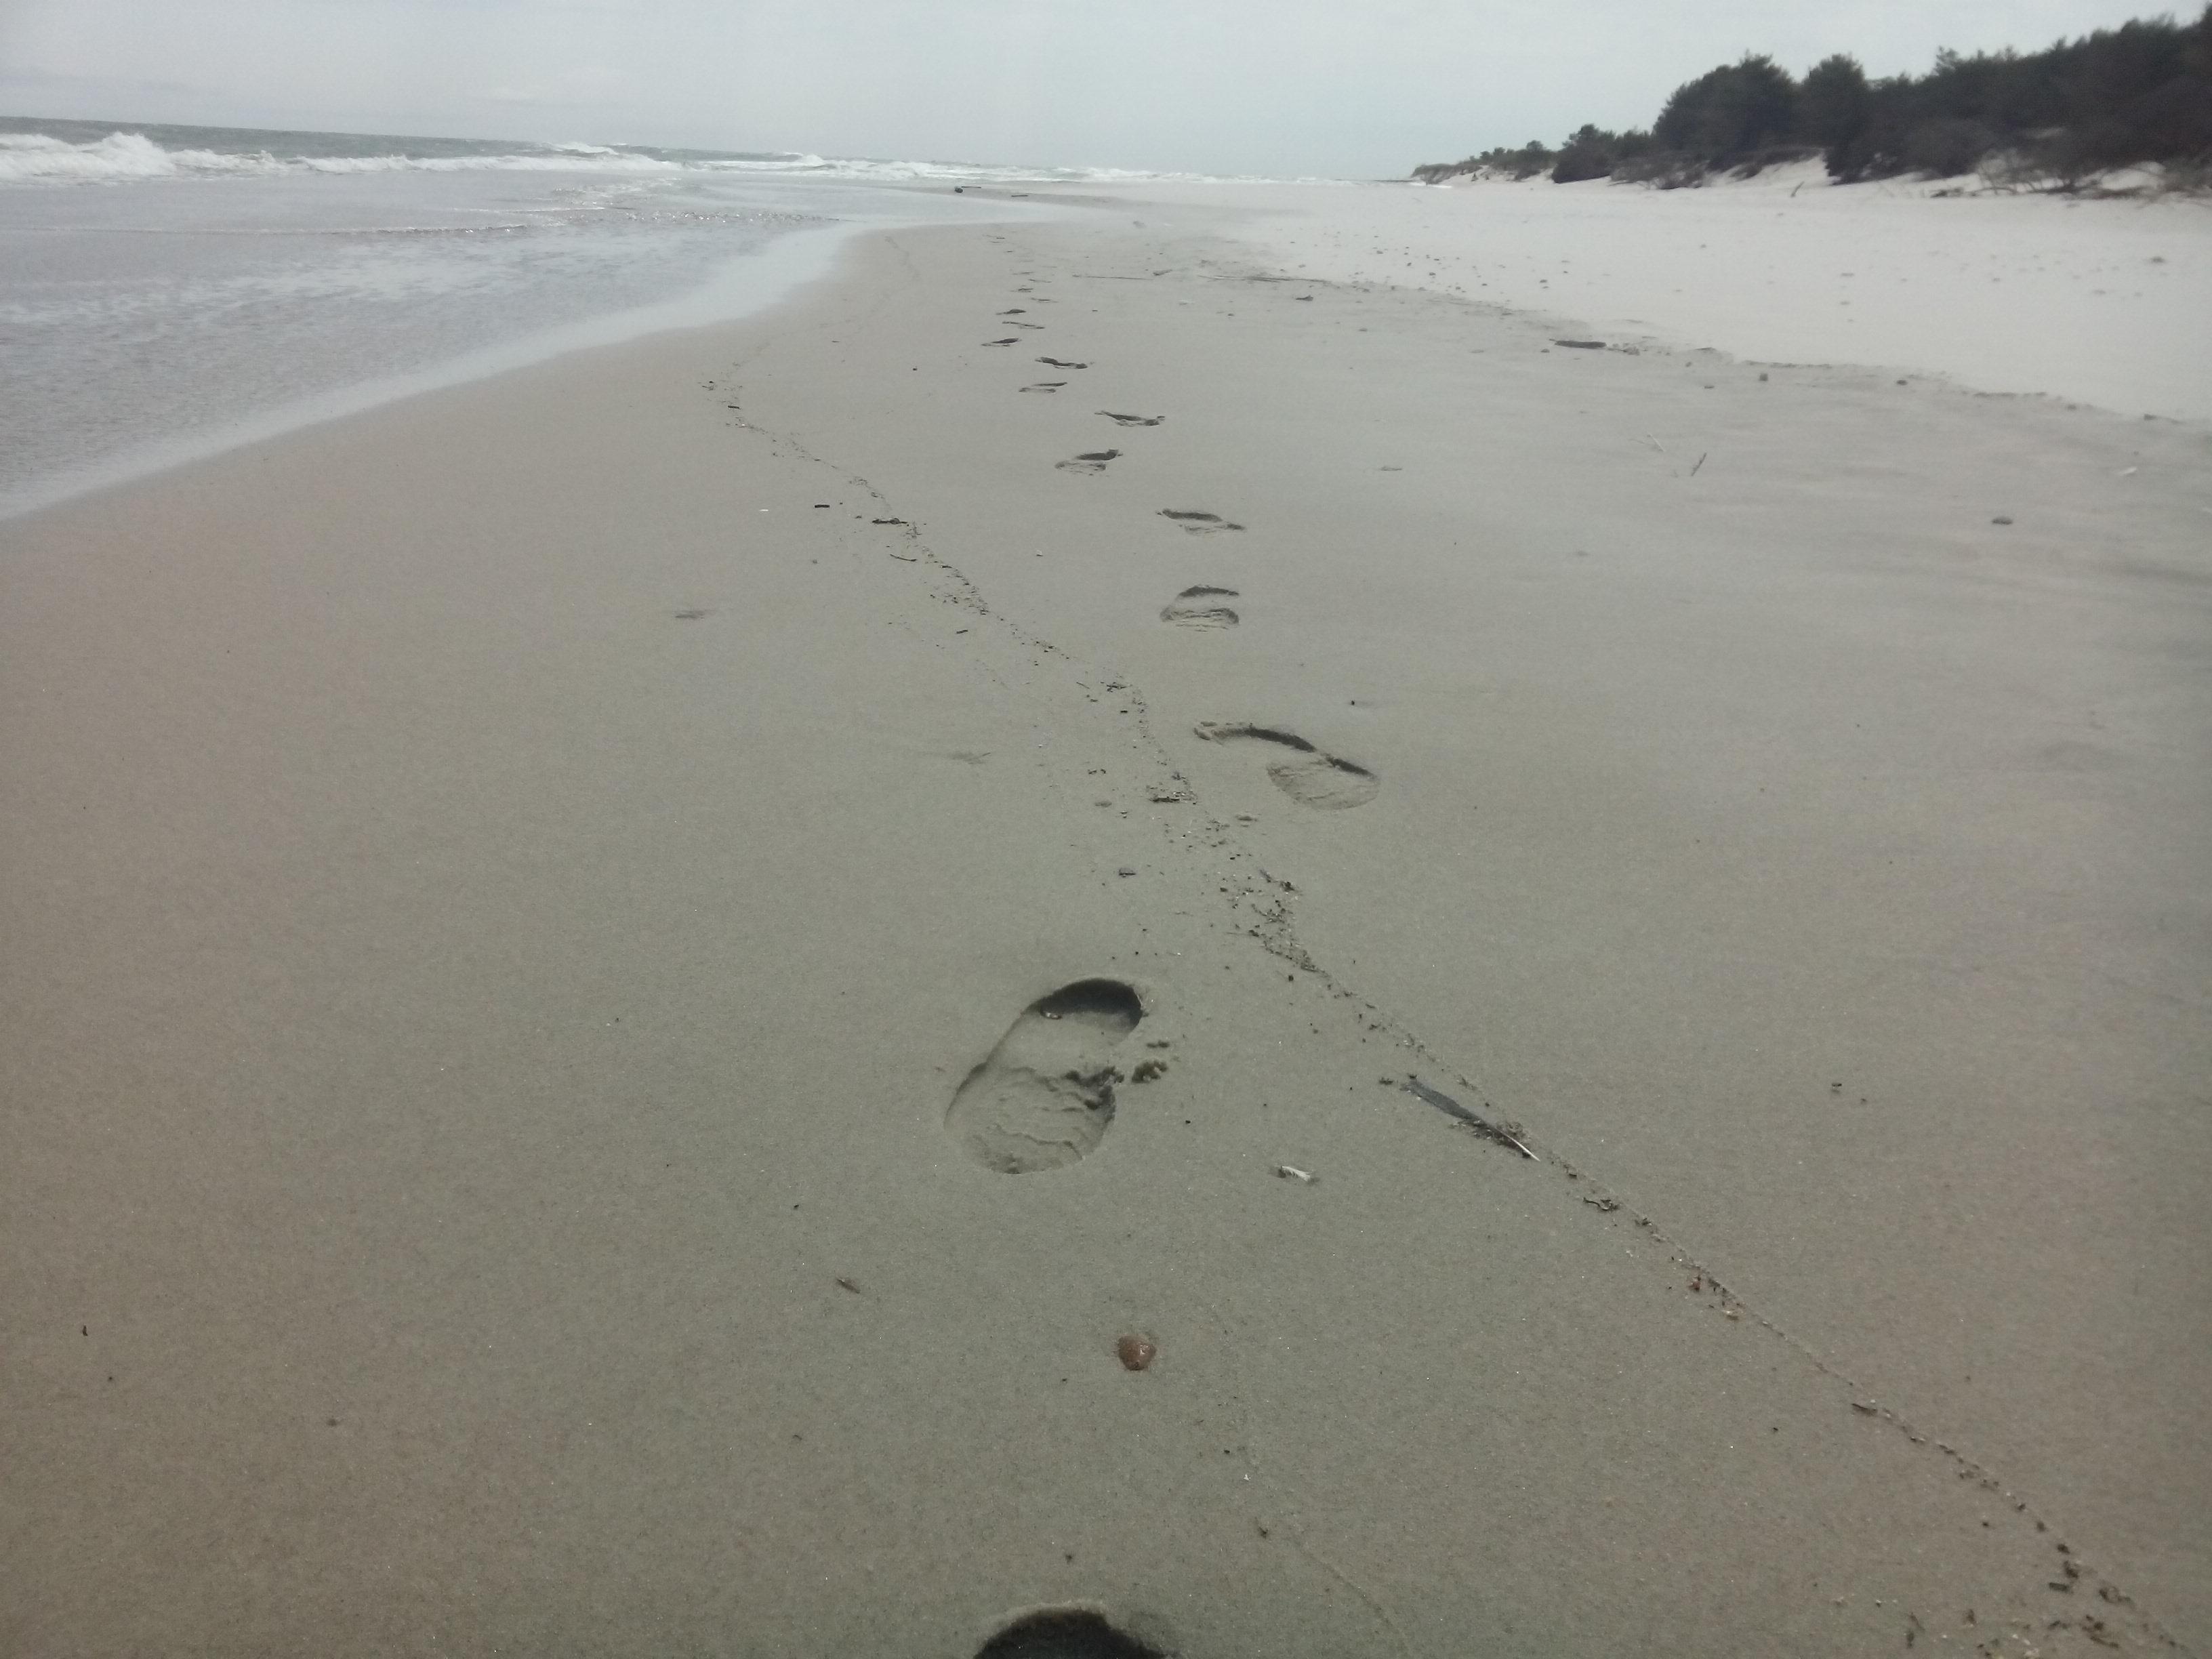 Footprints on a beach leading towards the camera, sea on the left